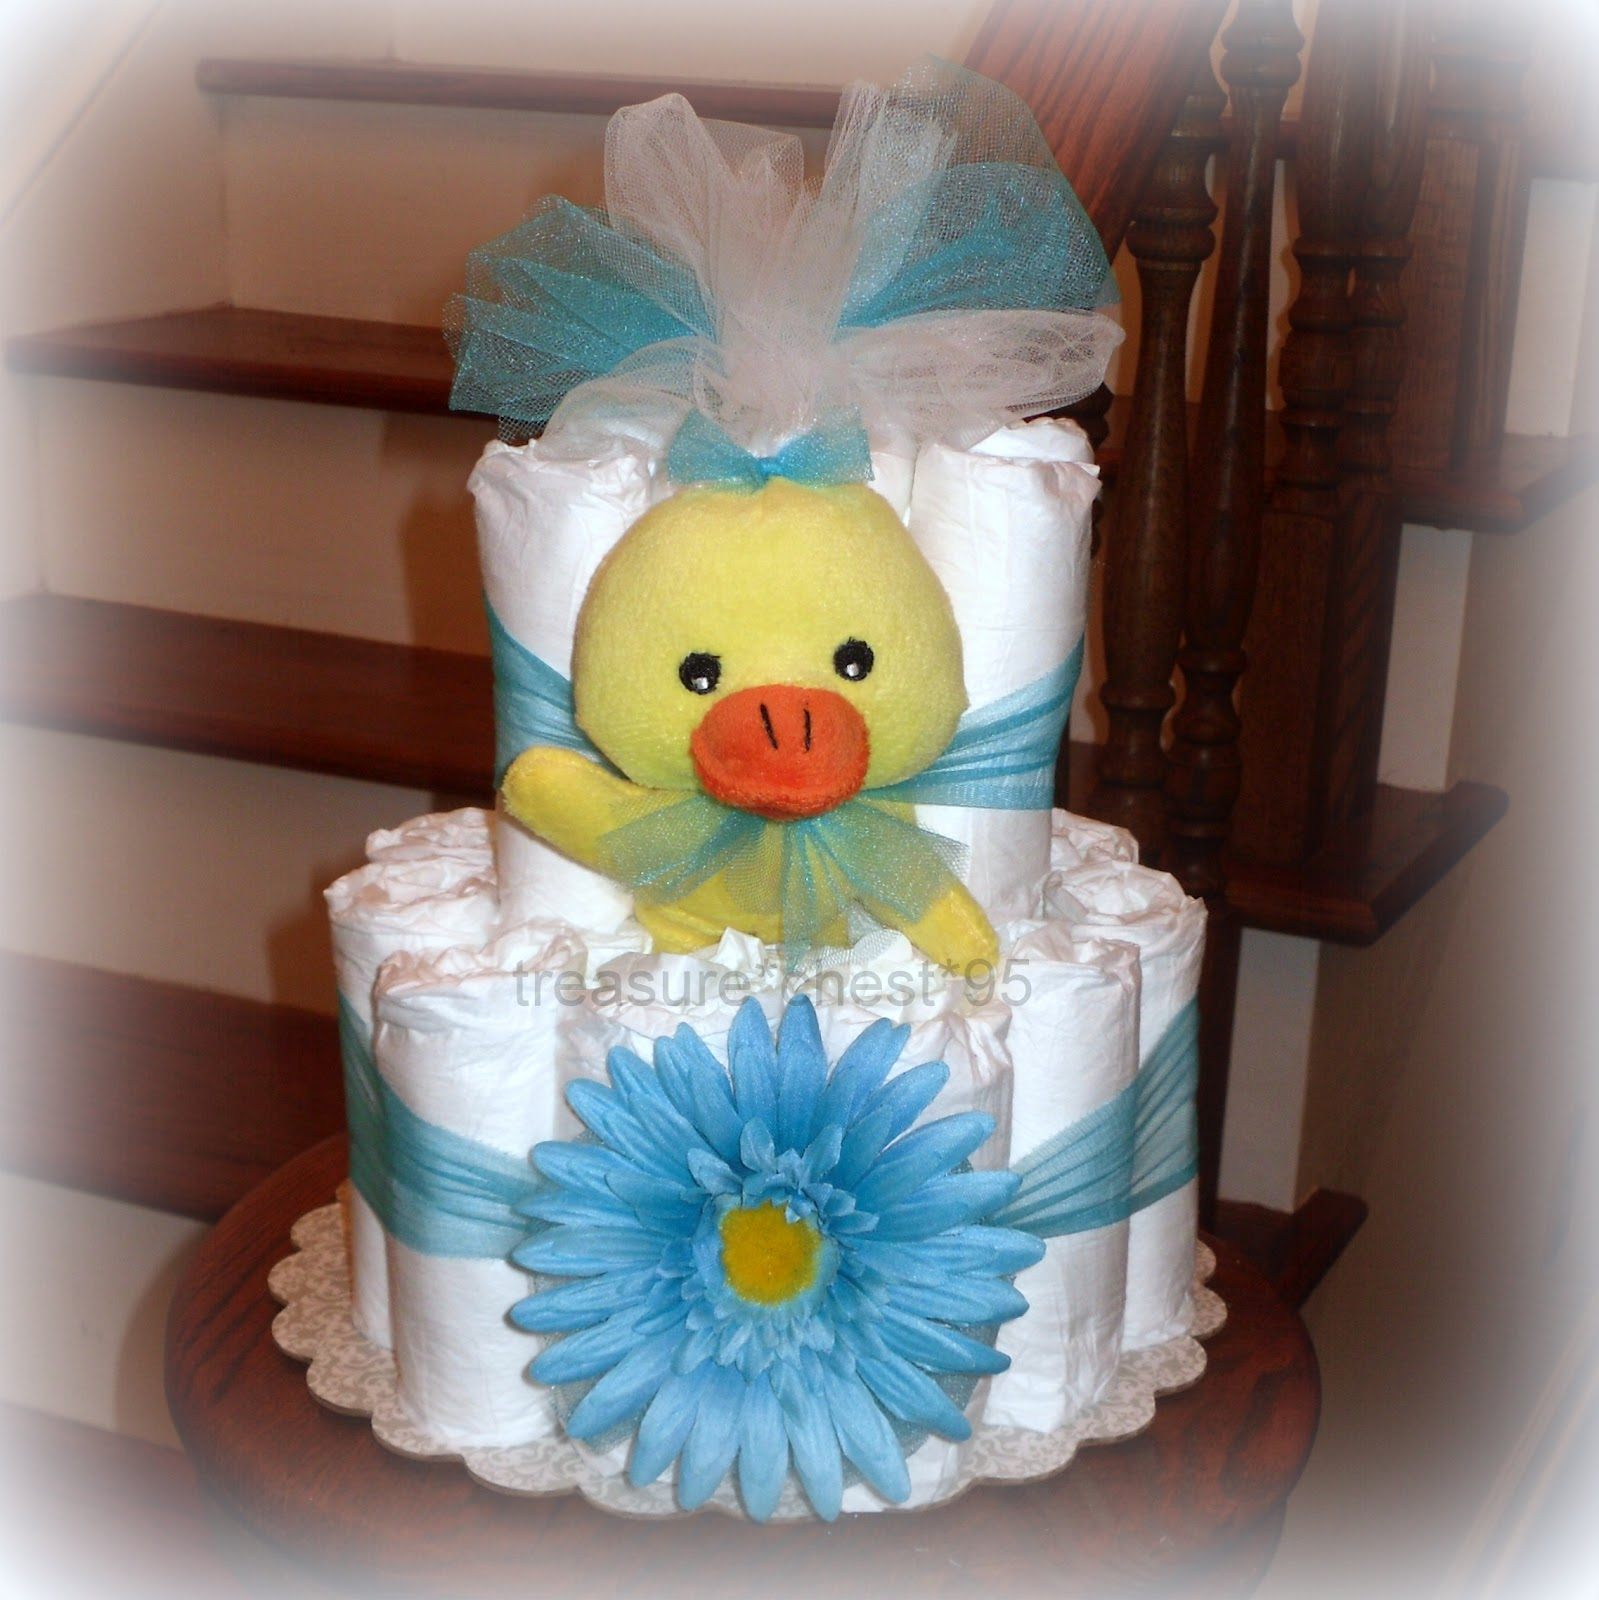 Rubber Duck Baby Shower Centerpieces http://www.popscreen.com/p/MTU4MzgzMjg1/--Diaper-Cake-Baby-Shower-Centerpiece-Decorations-Rubber-Ducky-Bubble